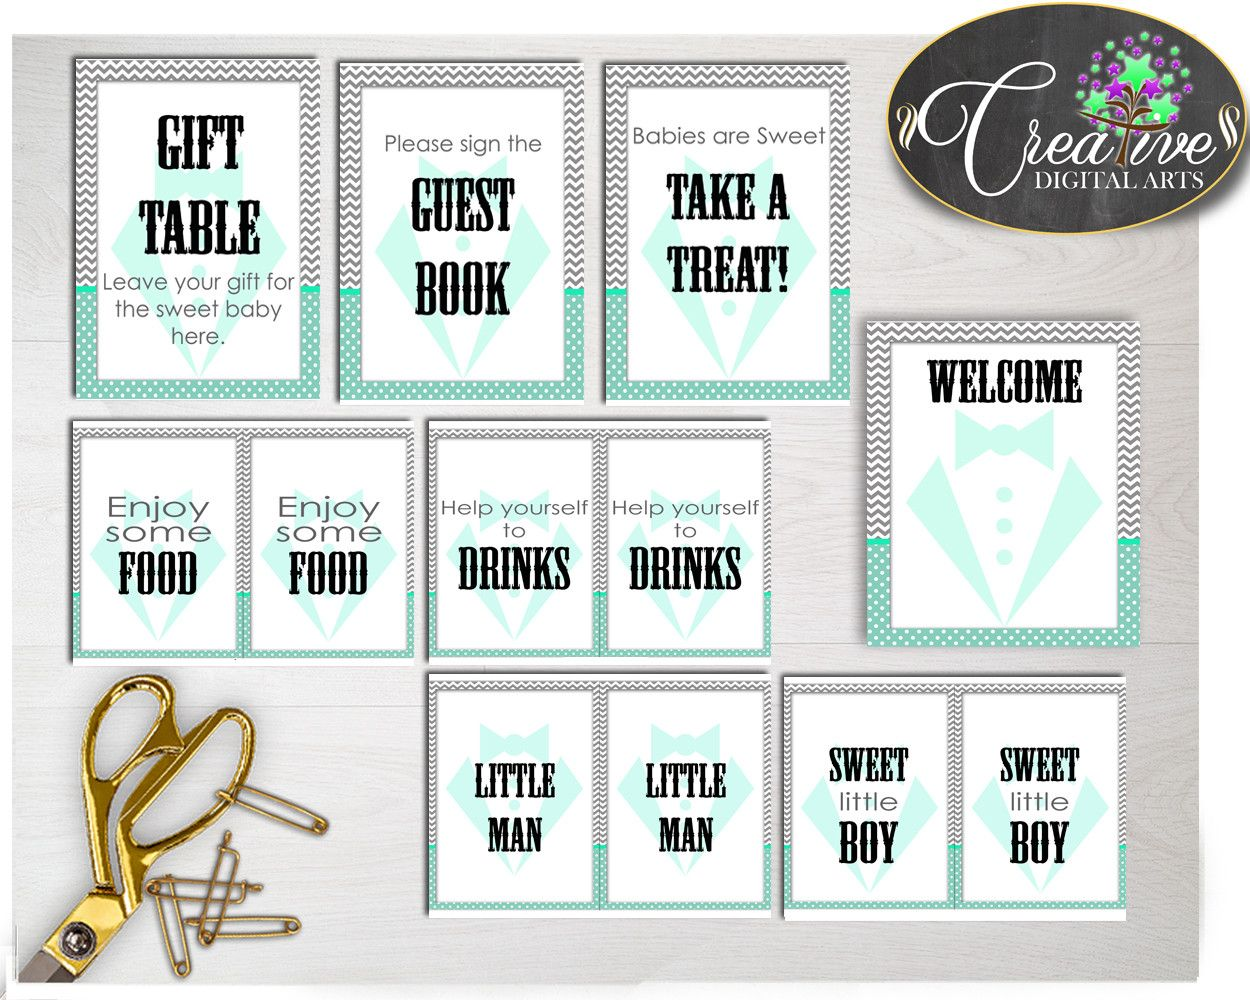 Our new product: Baby shower littl.... Check it out here: http://snoopy-online.myshopify.com/products/baby-shower-little-man-table-signs-decoration-gentleman-printable-in-mint-green-gray-color-theme-digital-files-instant-download-lm001